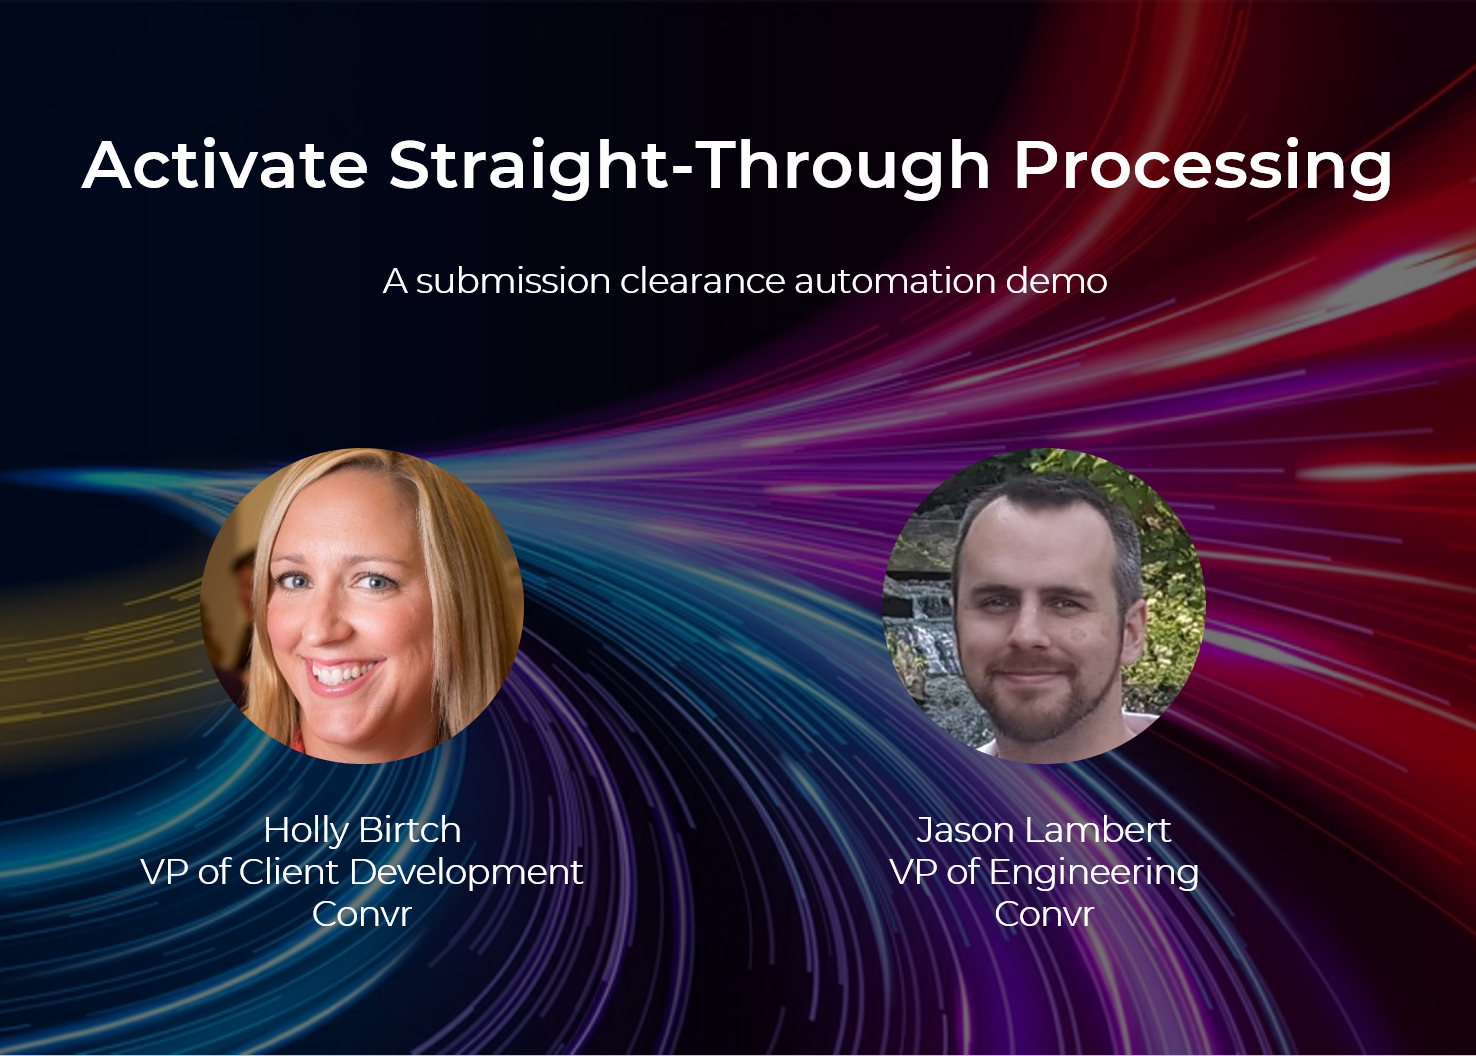 Webinar: Activate Straight-Through Processing